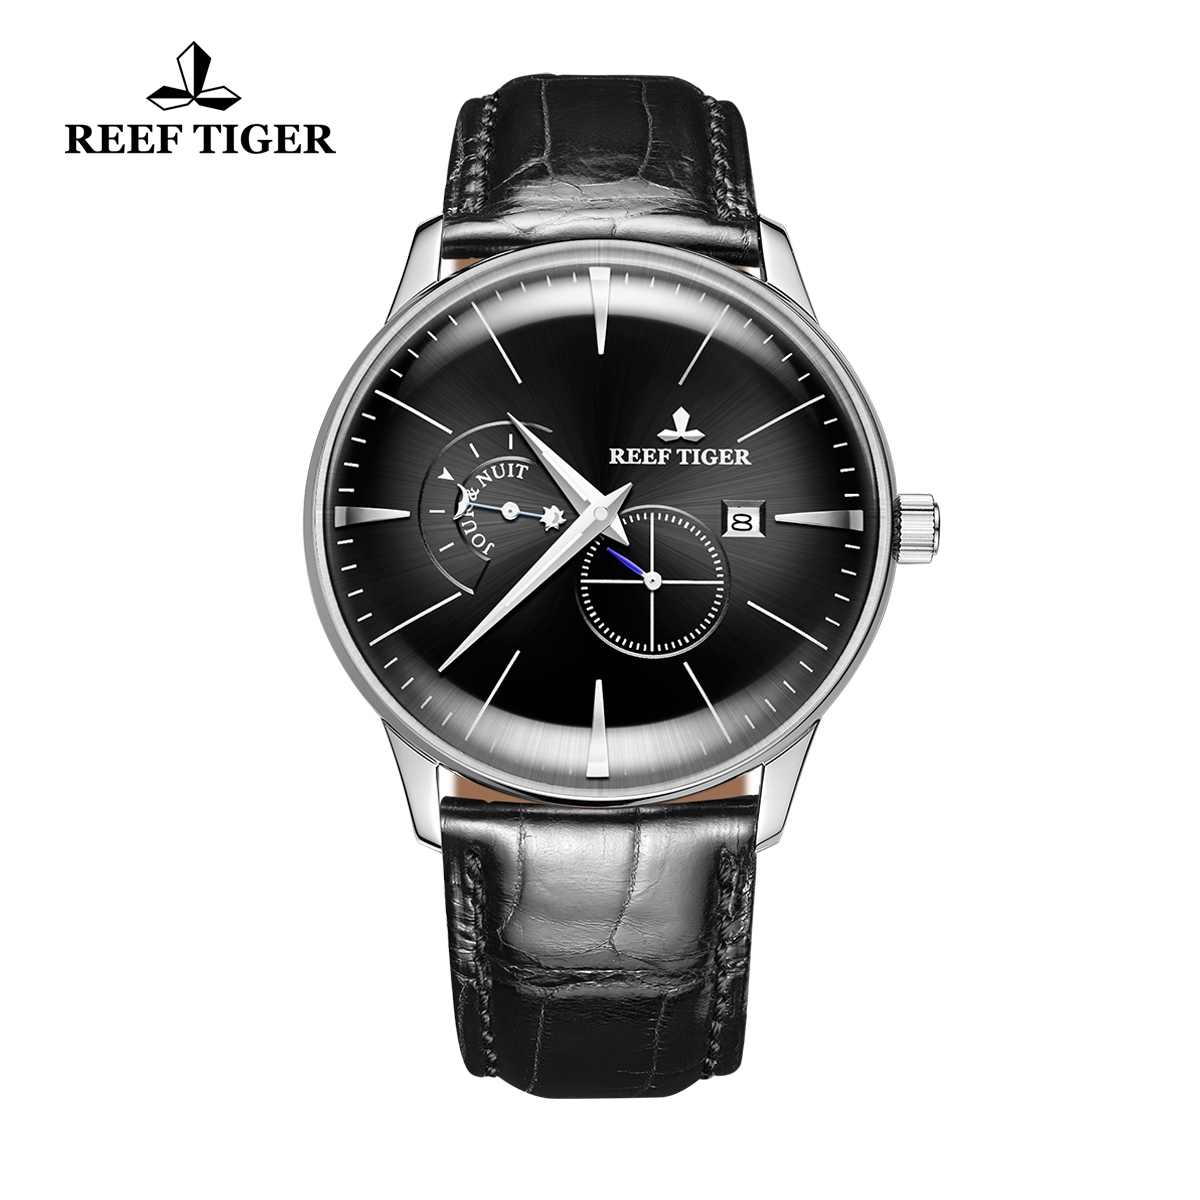 Reef Tiger Classic Artisan Men's Steel Fashion Watch Black Dial Leather Strap Automatic Watches RGA8219-YBB